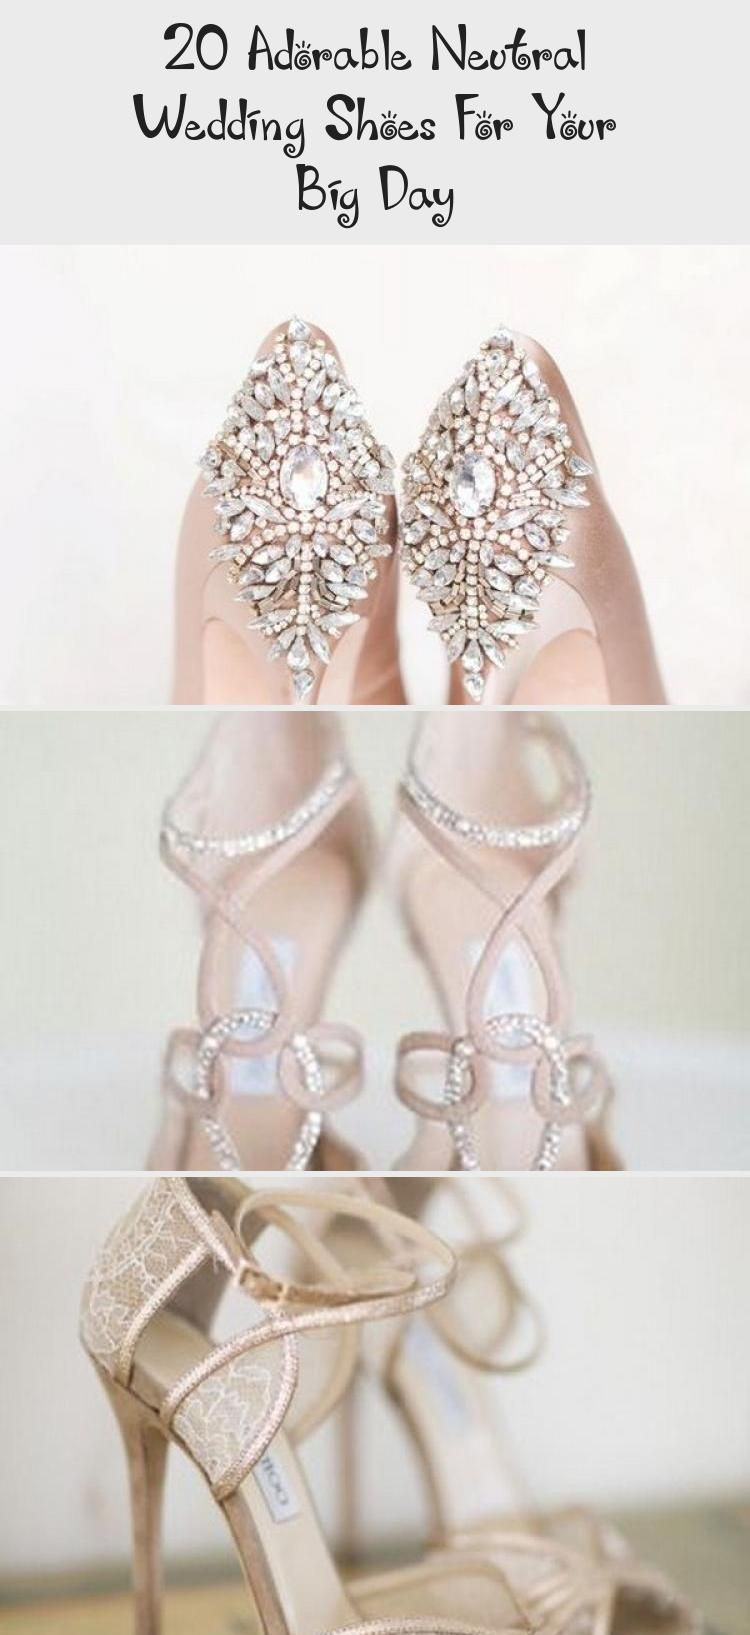 20 Adorable Neutral Wedding Shoes For Your Big Day - Ruth's Blog